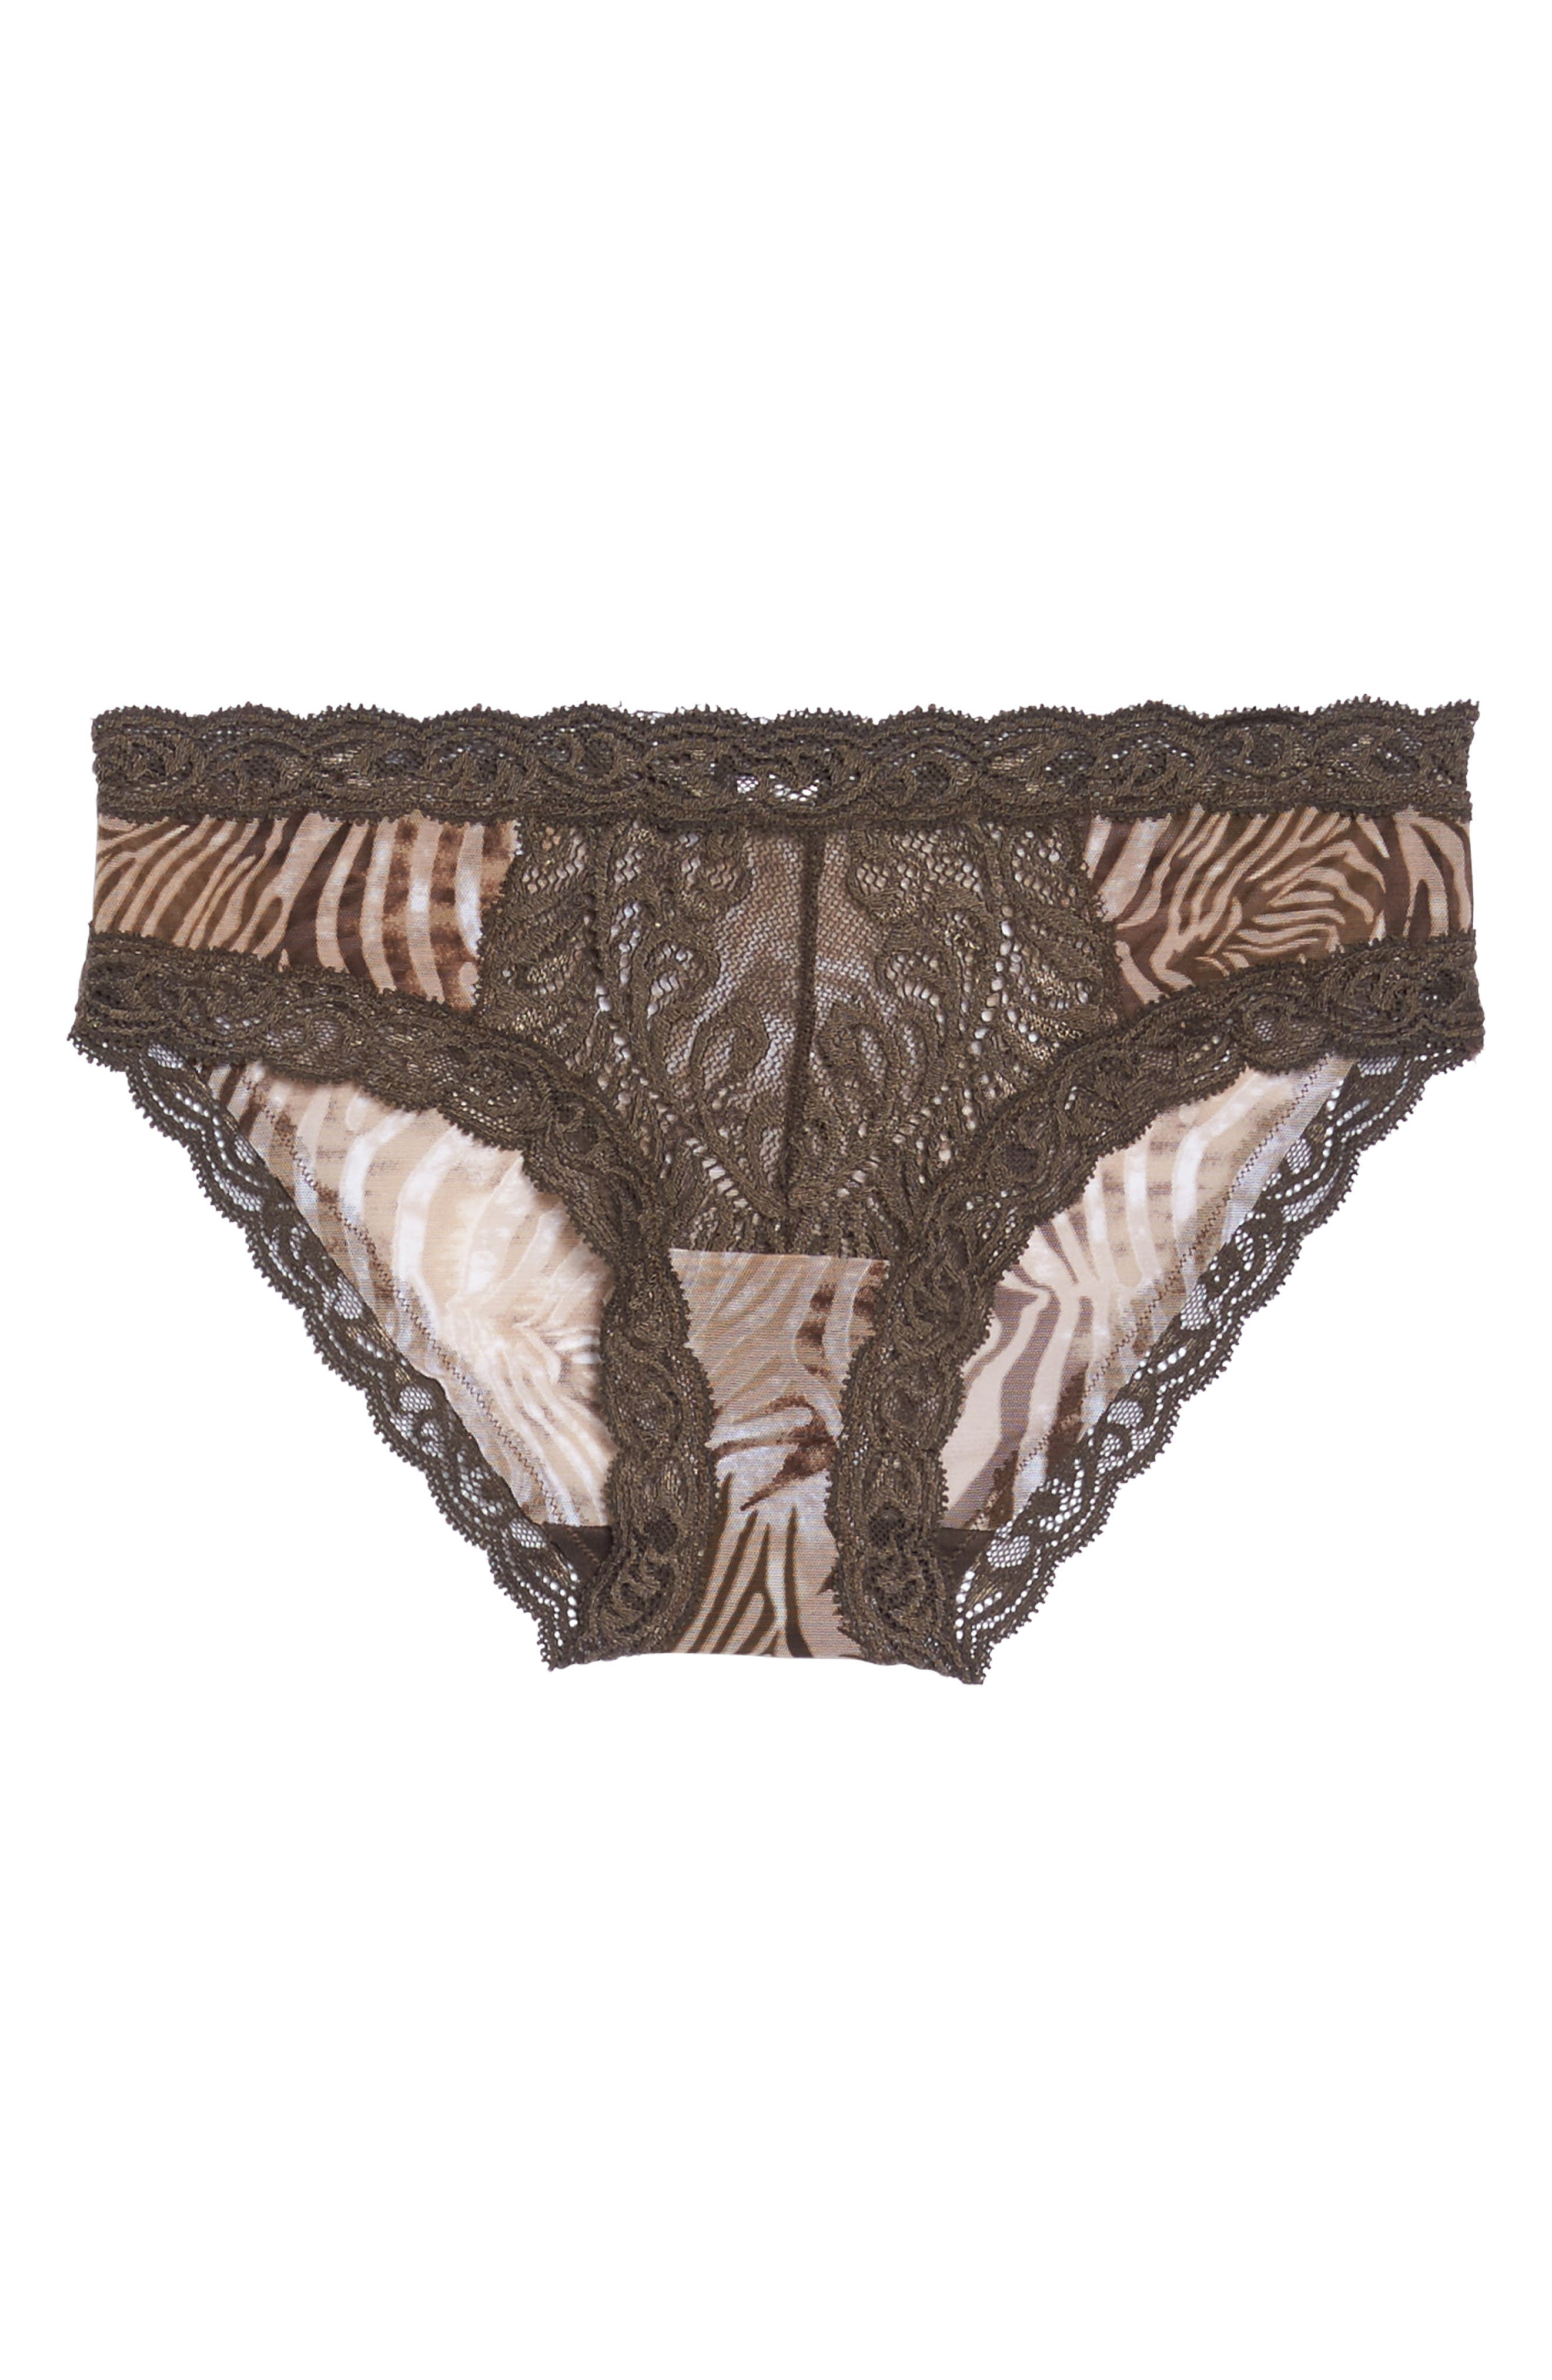 Feathers Hipster Briefs,                             Alternate thumbnail 415, color,